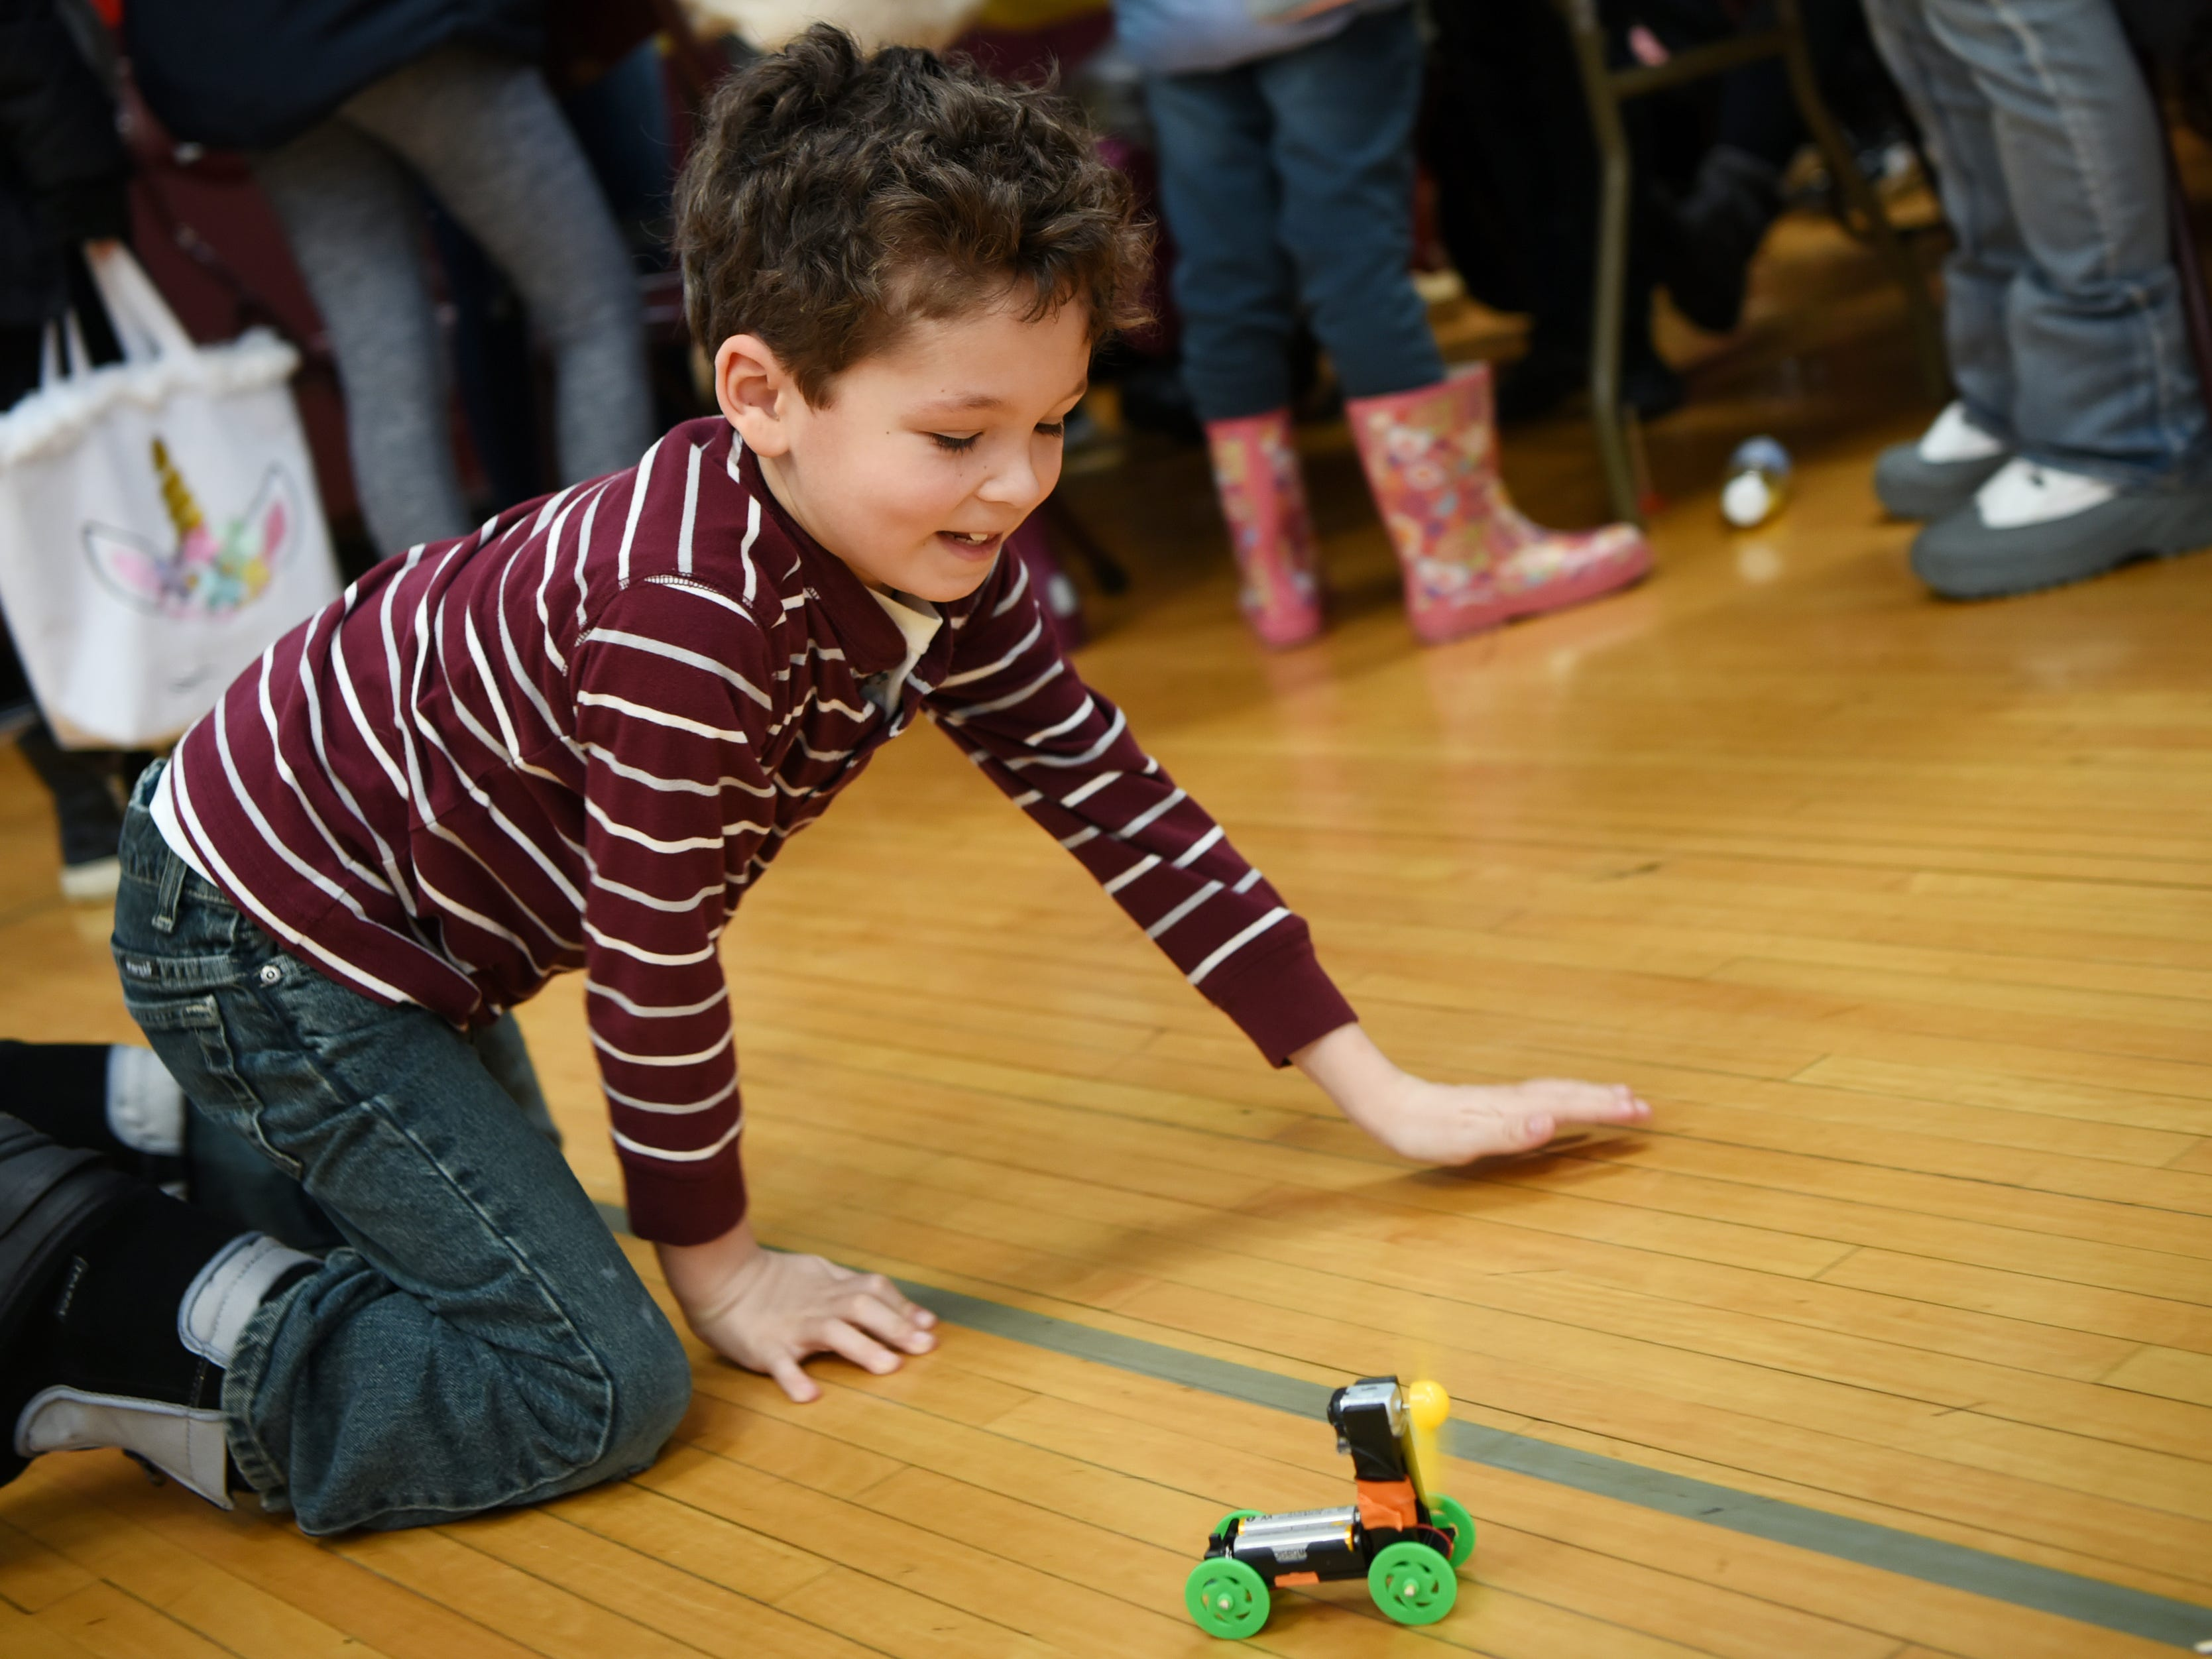 Jason Muzio, 7, plays with the wind-powered electric car he just created. This is one of many activities during Super Science Saturday held at Ridgewood High School in Ridgewood on Saturday March 2, 2019.